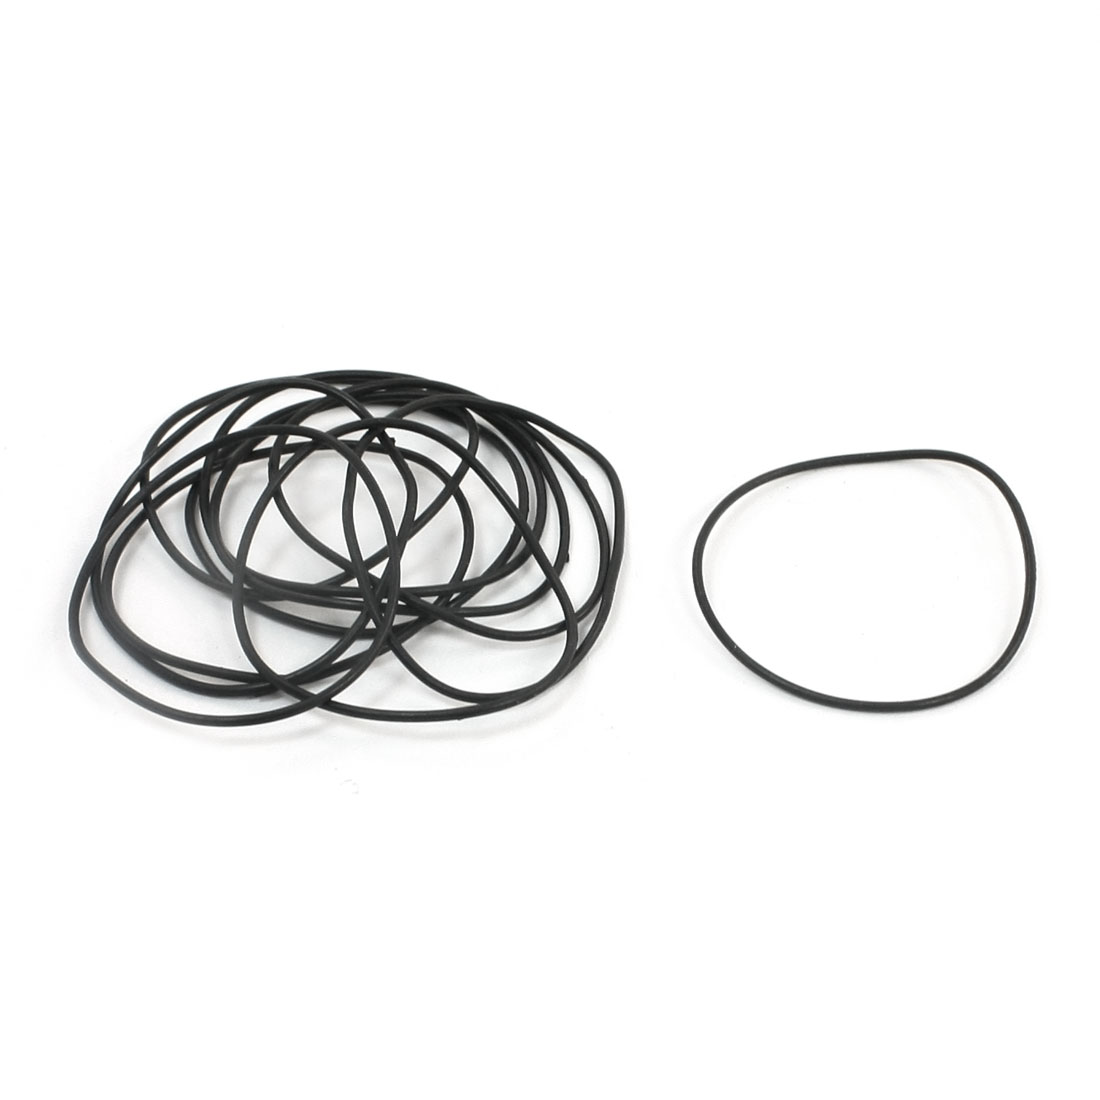 10 Piece Uxcell 34mm x 1mm Cross Section Rubber Oil Filter Seal Gasket O Rings Ltd // Uxcell a14022100ux0142 Dragonmarts Co